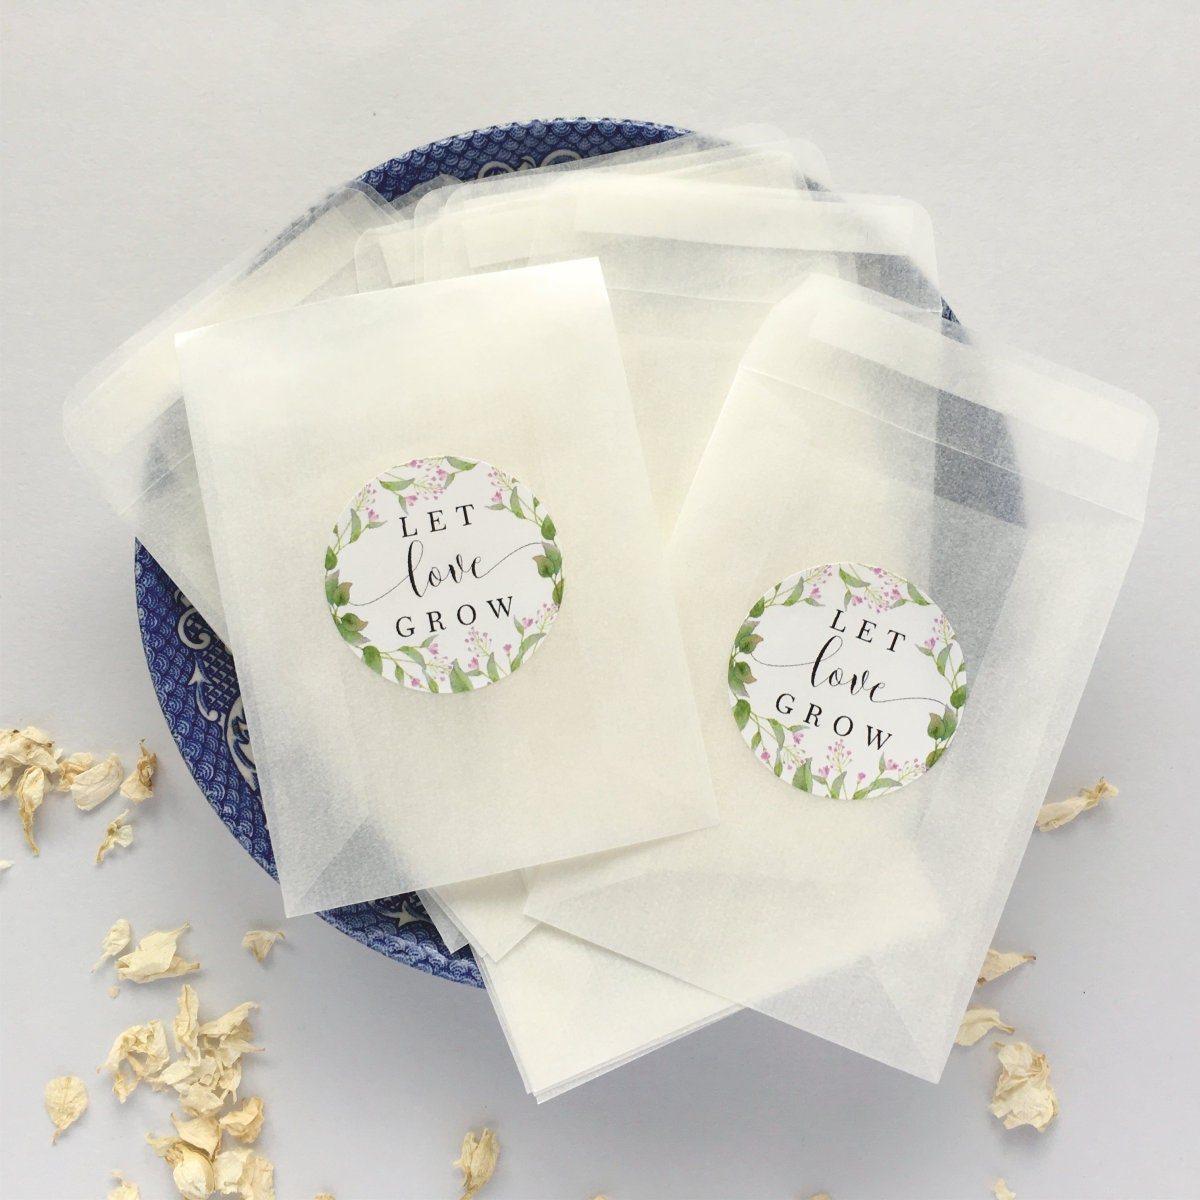 100 Let Love Grow Seed Envelopes with labels Glassine